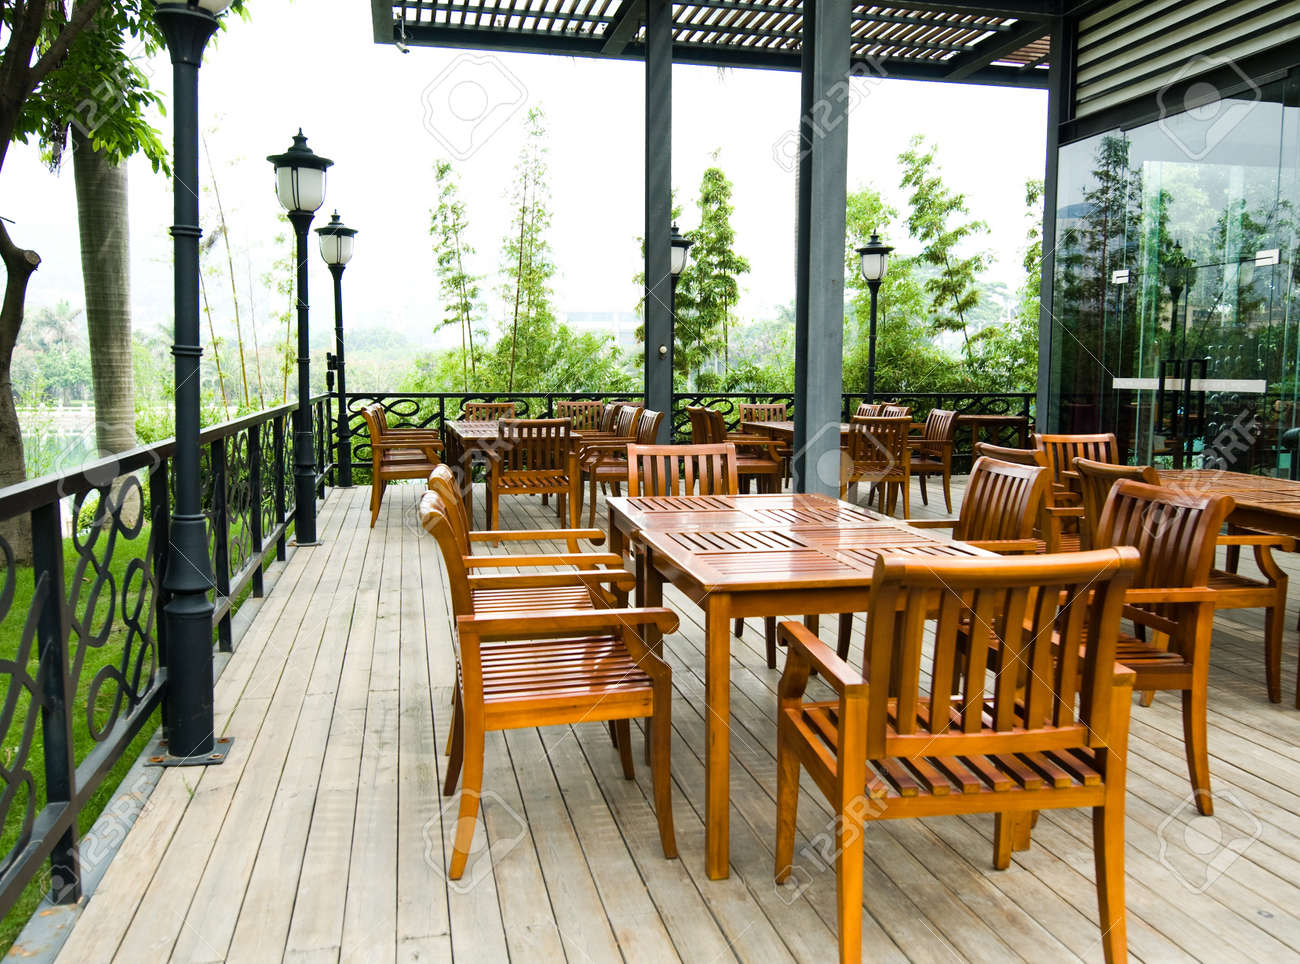 house patio with wooden patio furniture stock photo